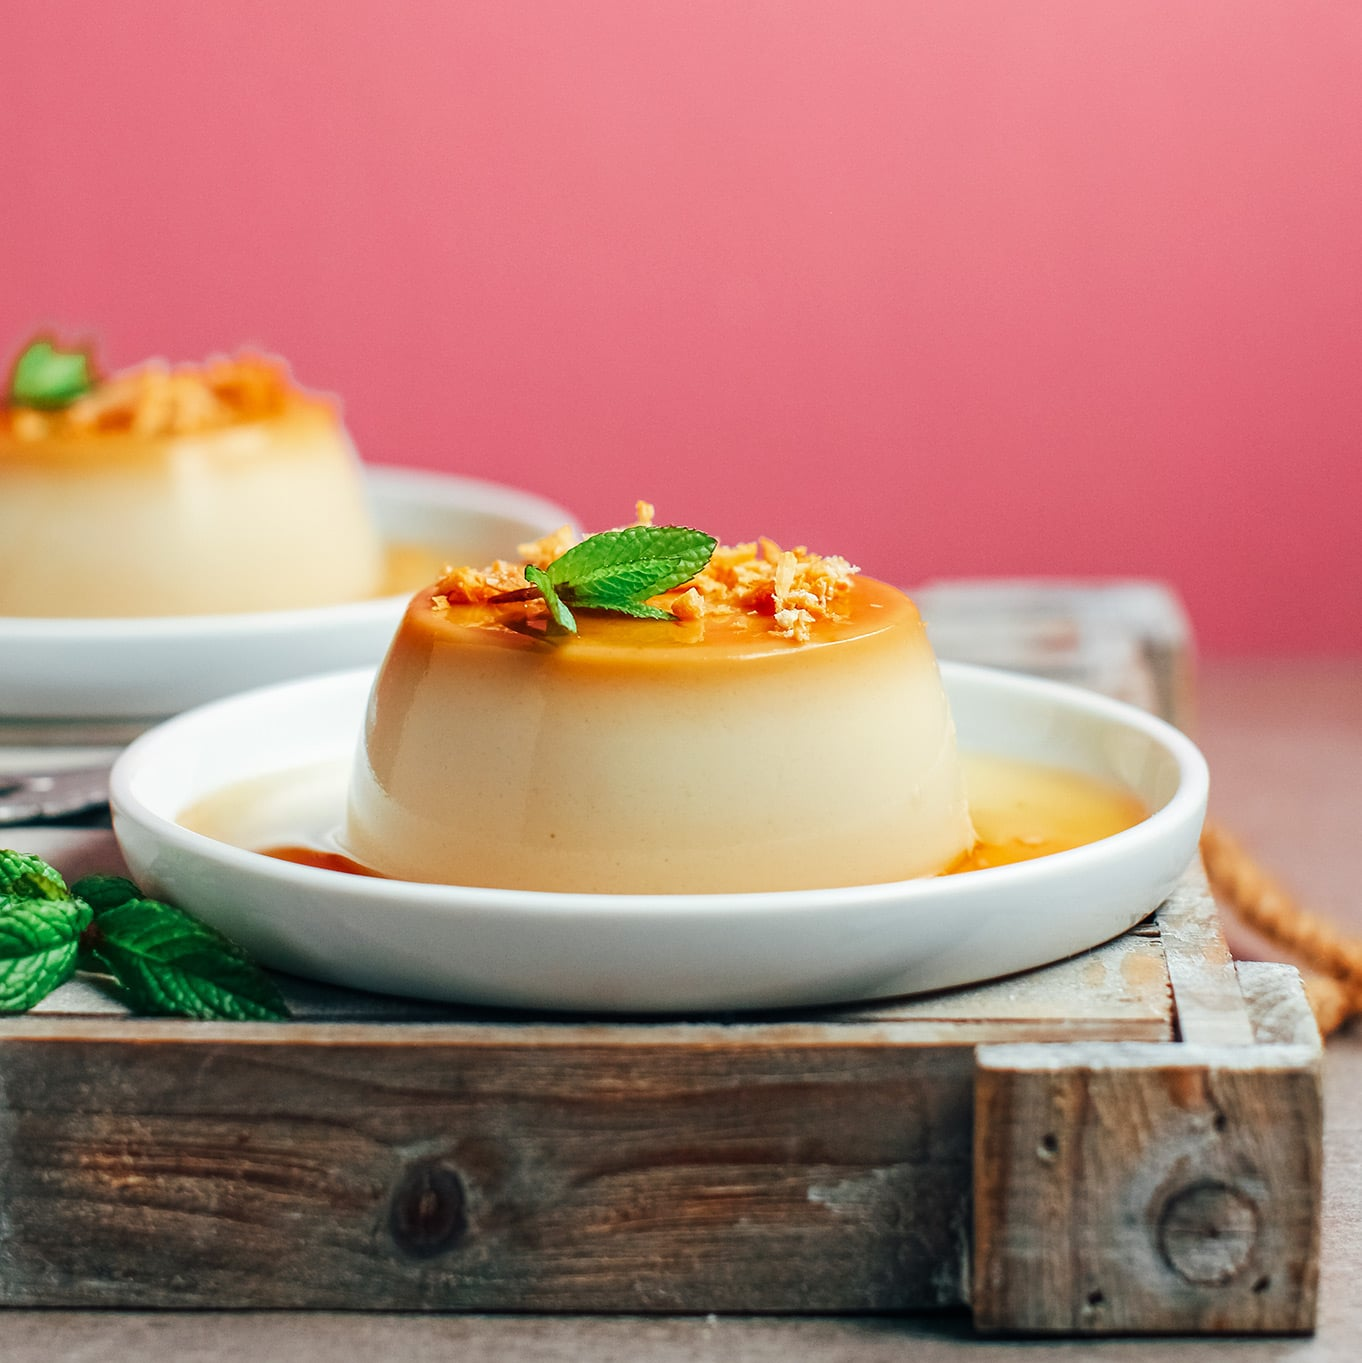 Vegan Creme Caramel - Full of Plants